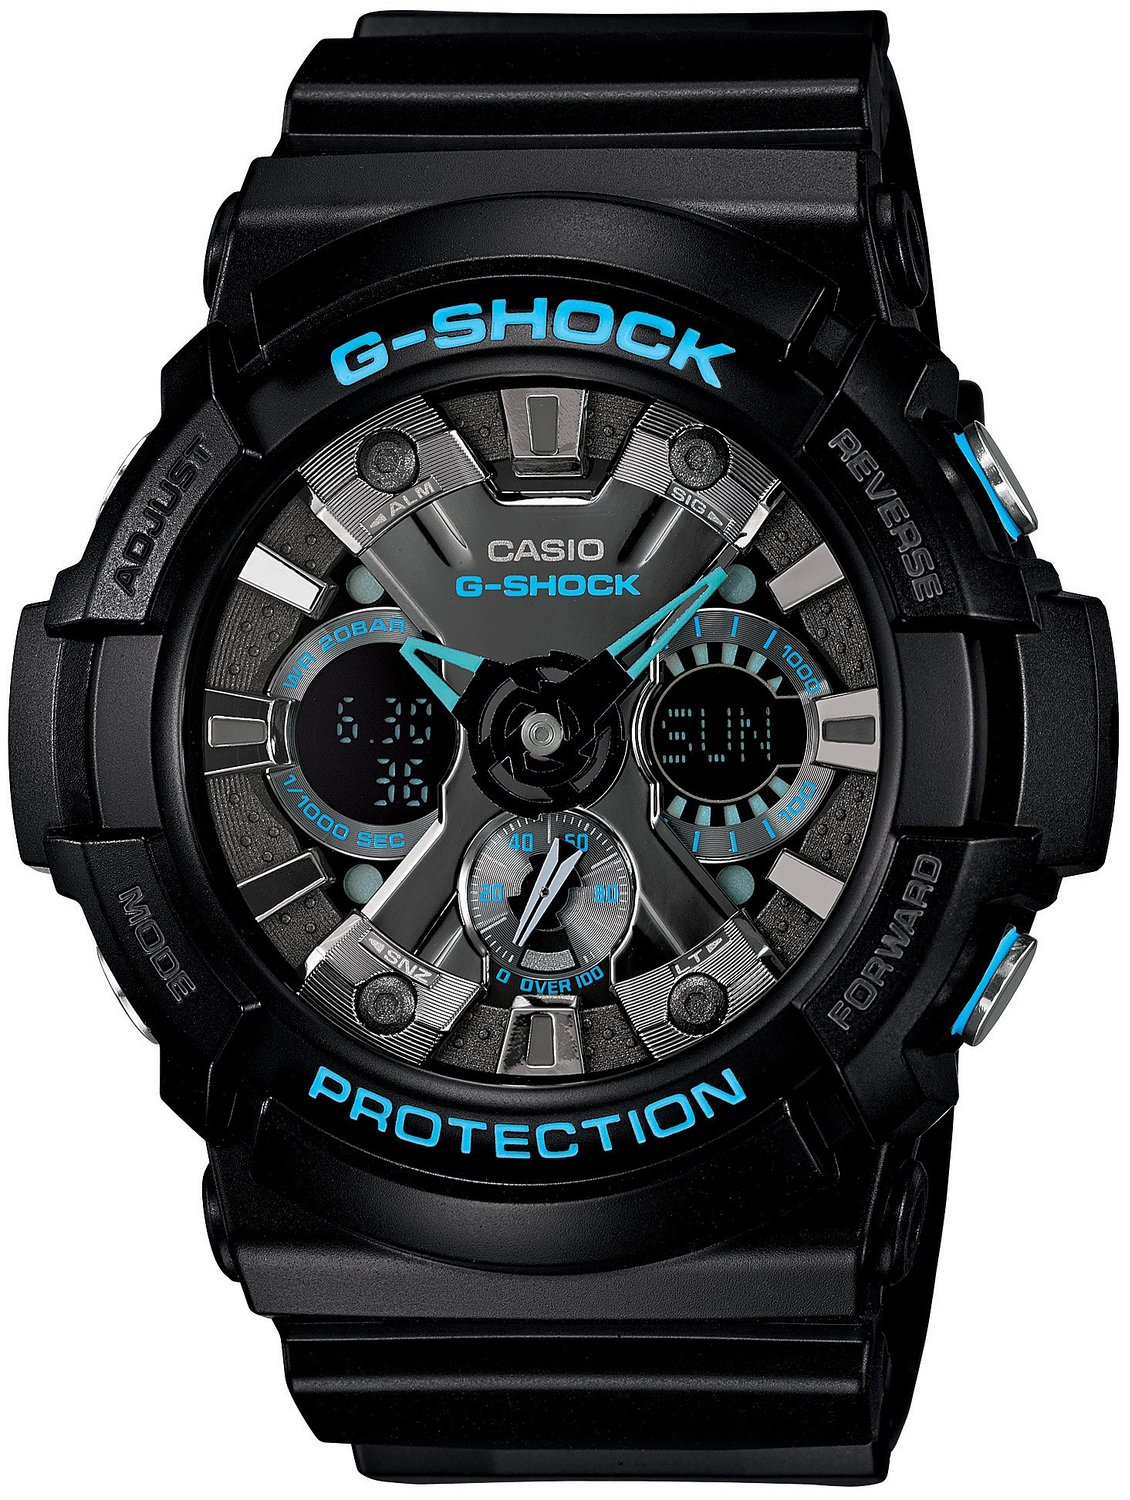 Casio Men's GA201-1 G-Shock Shock Resistant Sport Watch